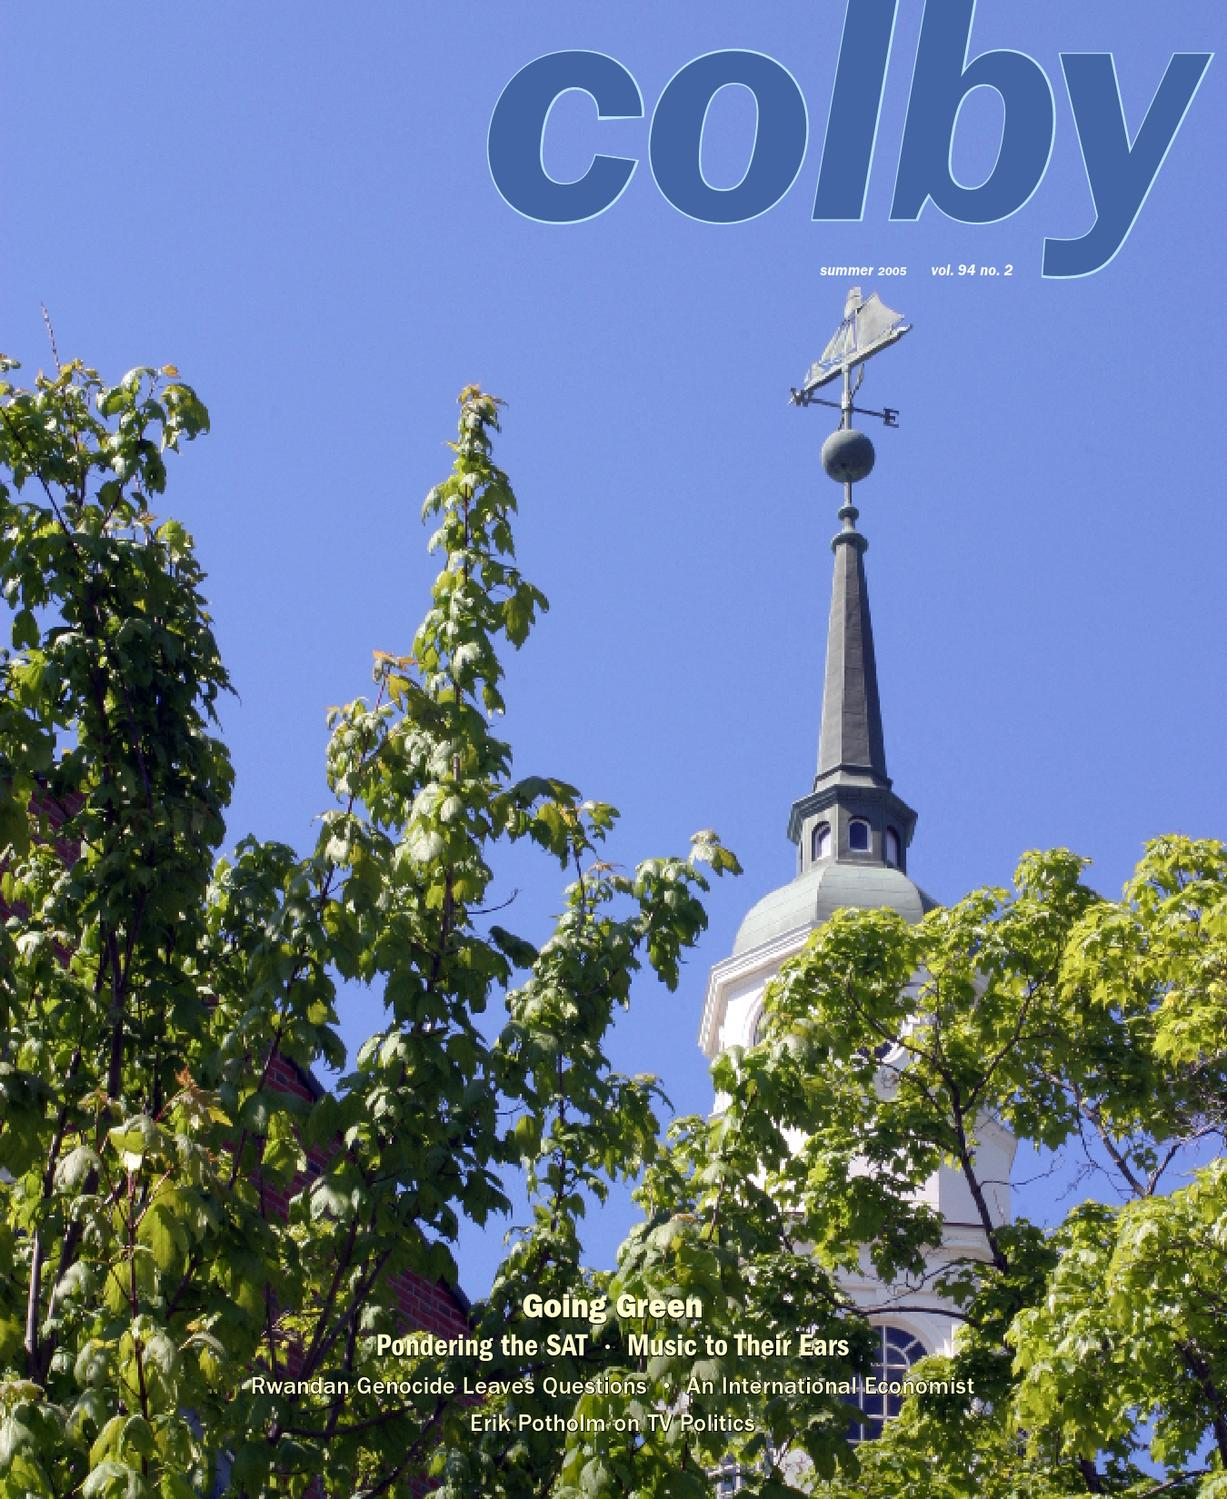 colby magazine vol 94 no 2 by colby college libraries issuu